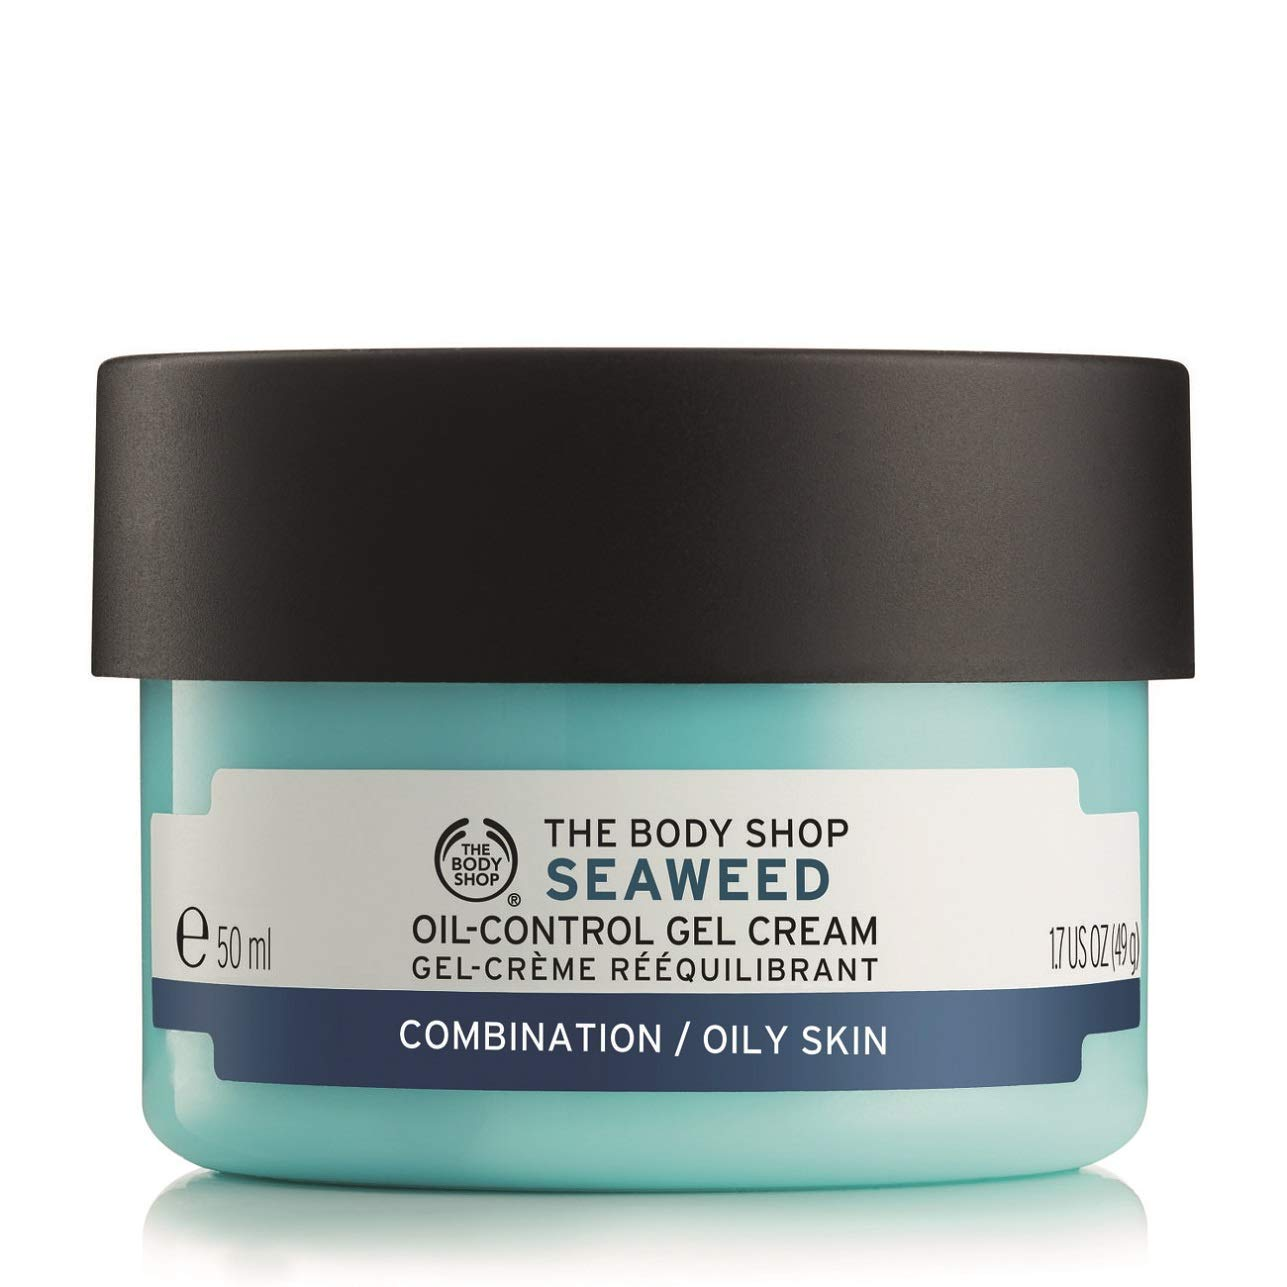 The Body Shop Seaweed Oil Control Gel Cream